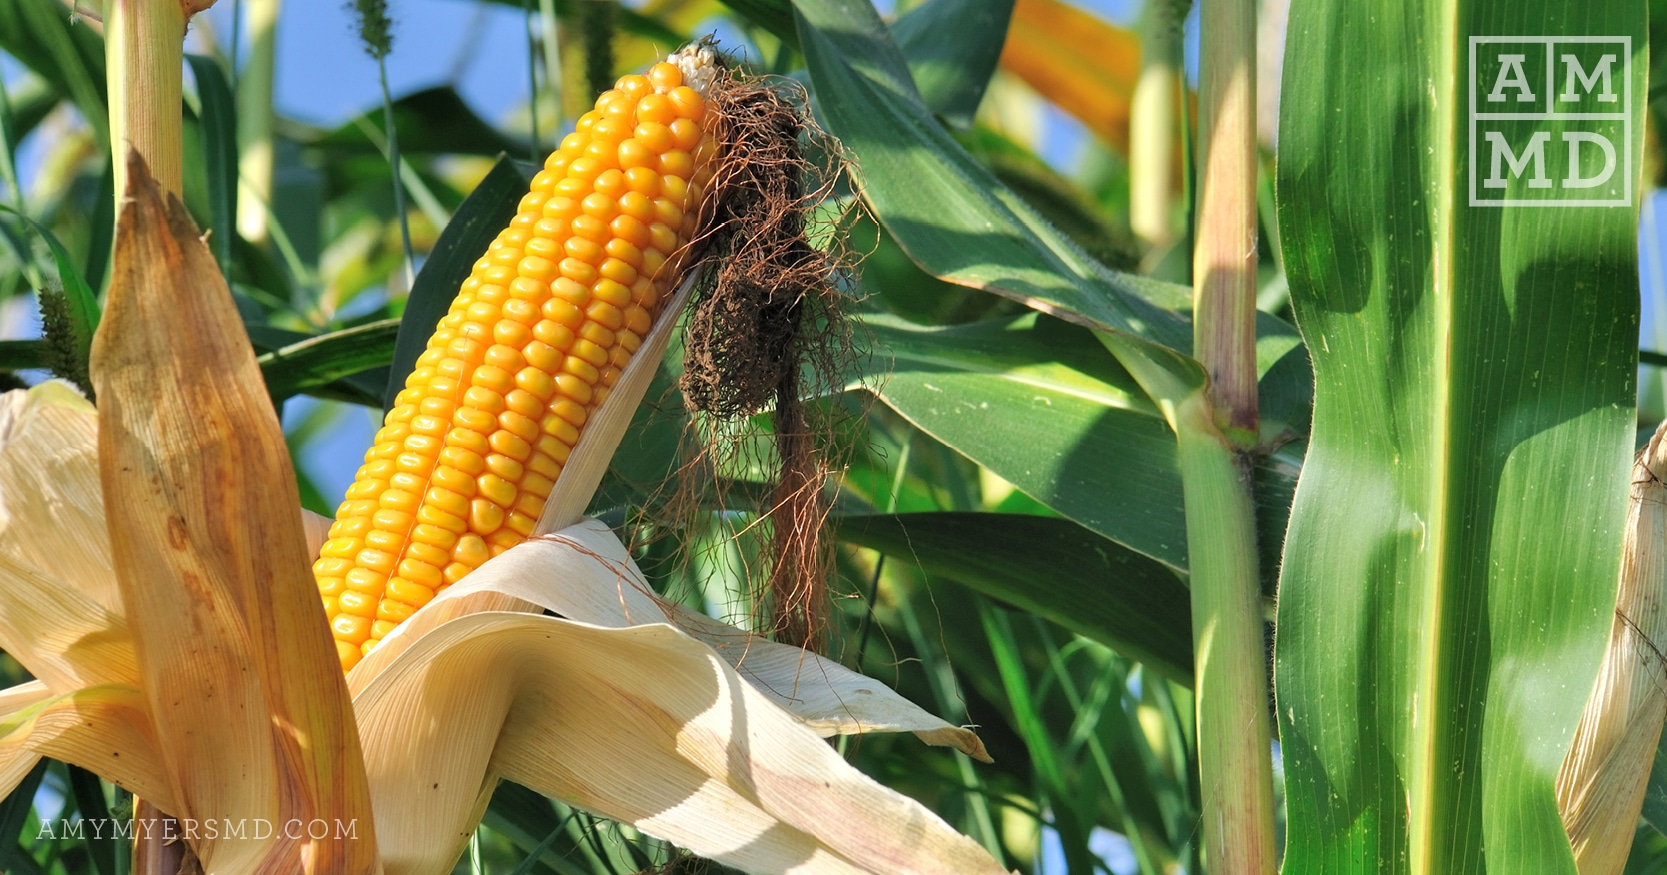 3 Reasons to Avoid GMOs If You Have an Autoimmune Disease